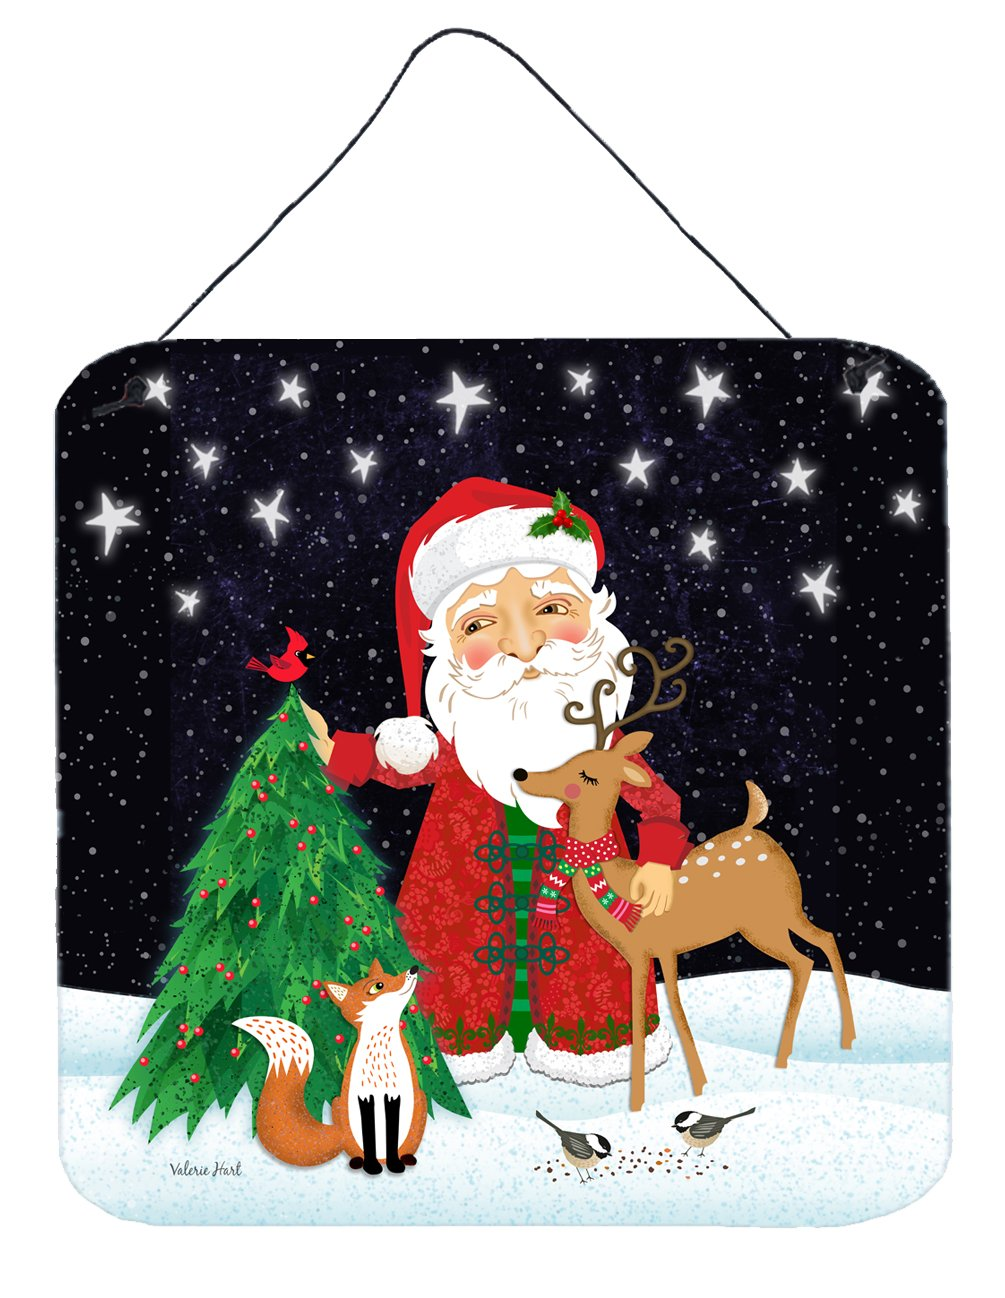 Santa Claus Christmas Wall or Door Hanging Prints by Caroline's Treasures